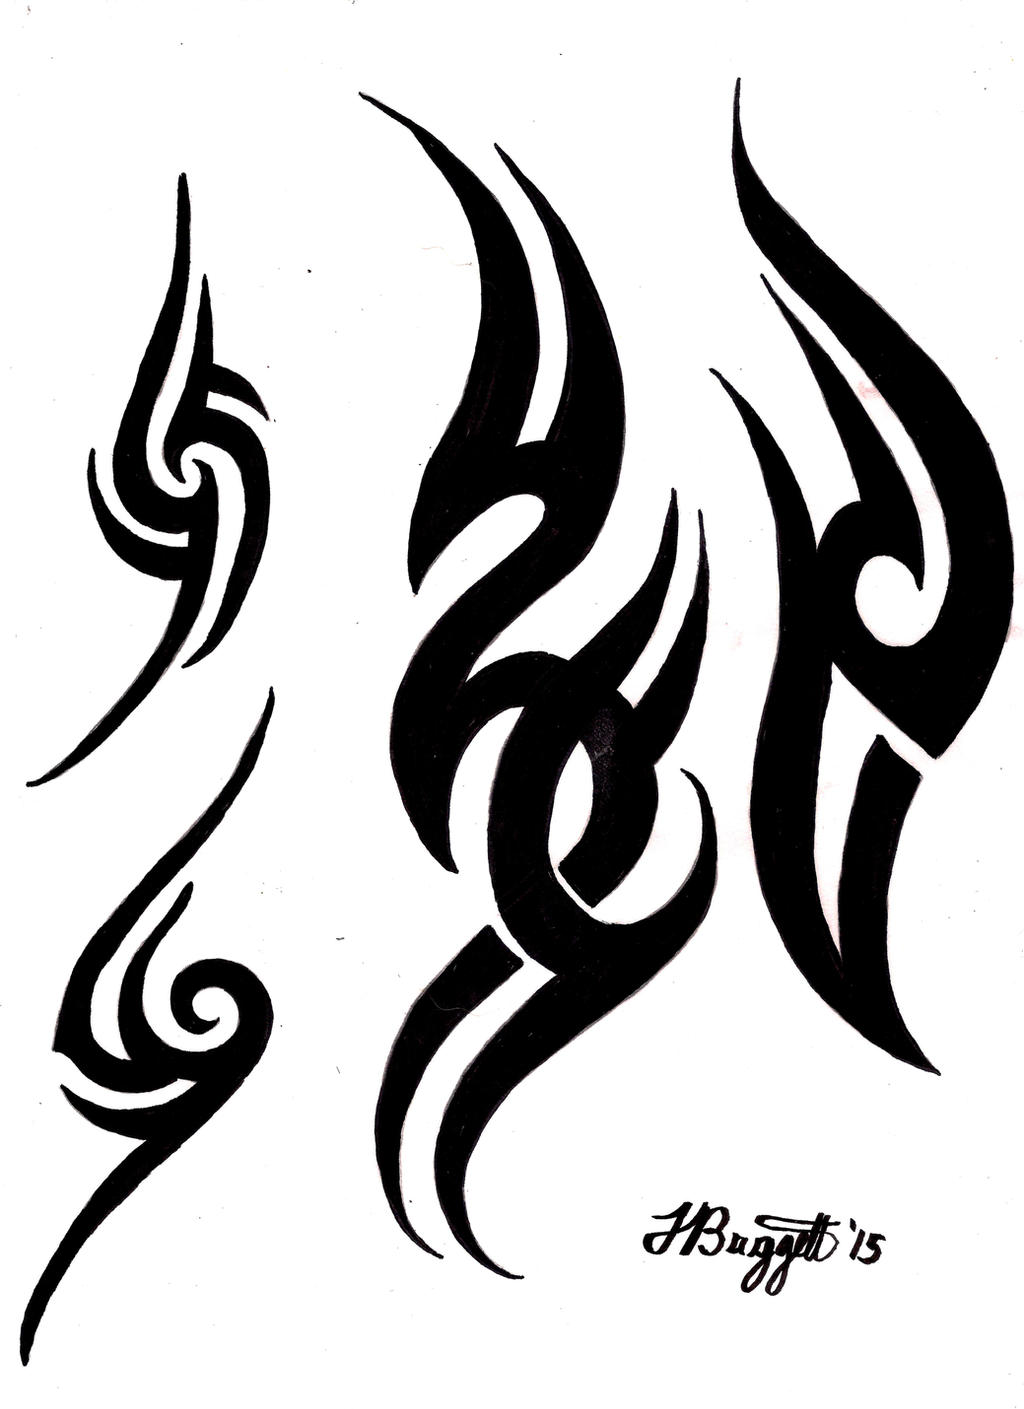 Tribal tattoo flash by punch line designs on deviantart for Tribal tattoo shops near me